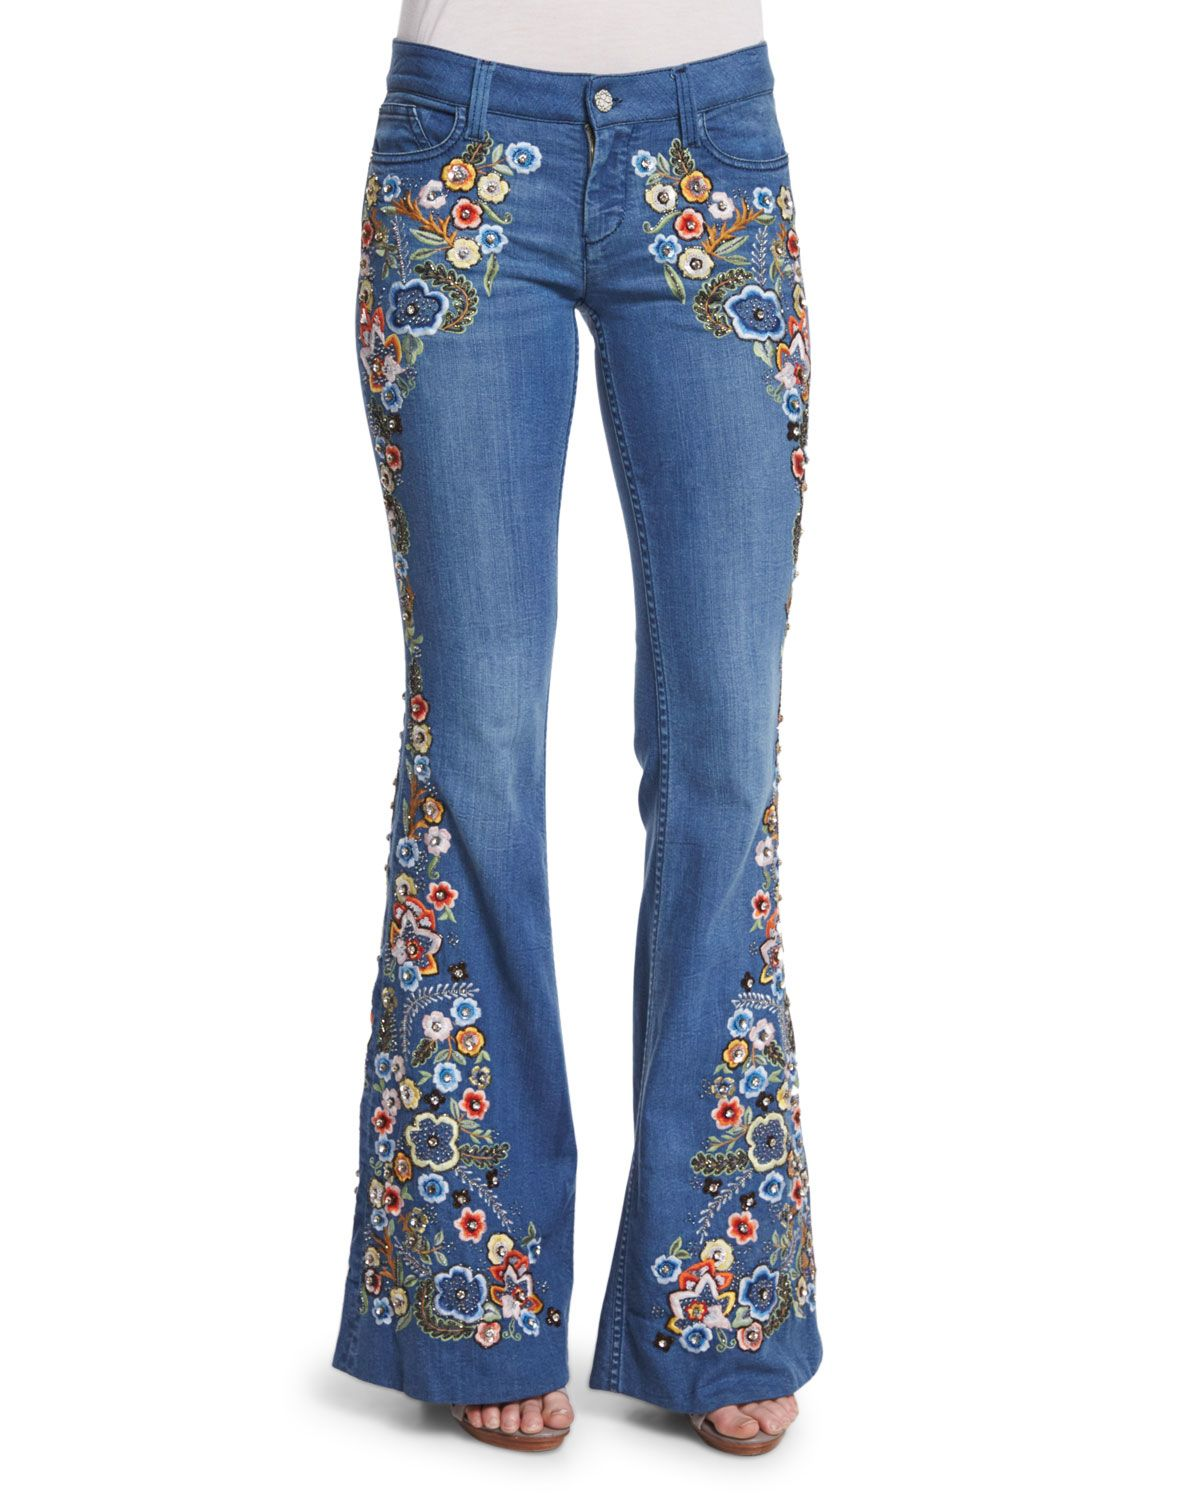 DENIM - Denim trousers Alice & Olivia Clearance How Much Best Store To Get Sale Online Offer Free Shipping Exclusive Where Can You Find DJKJ253rmF